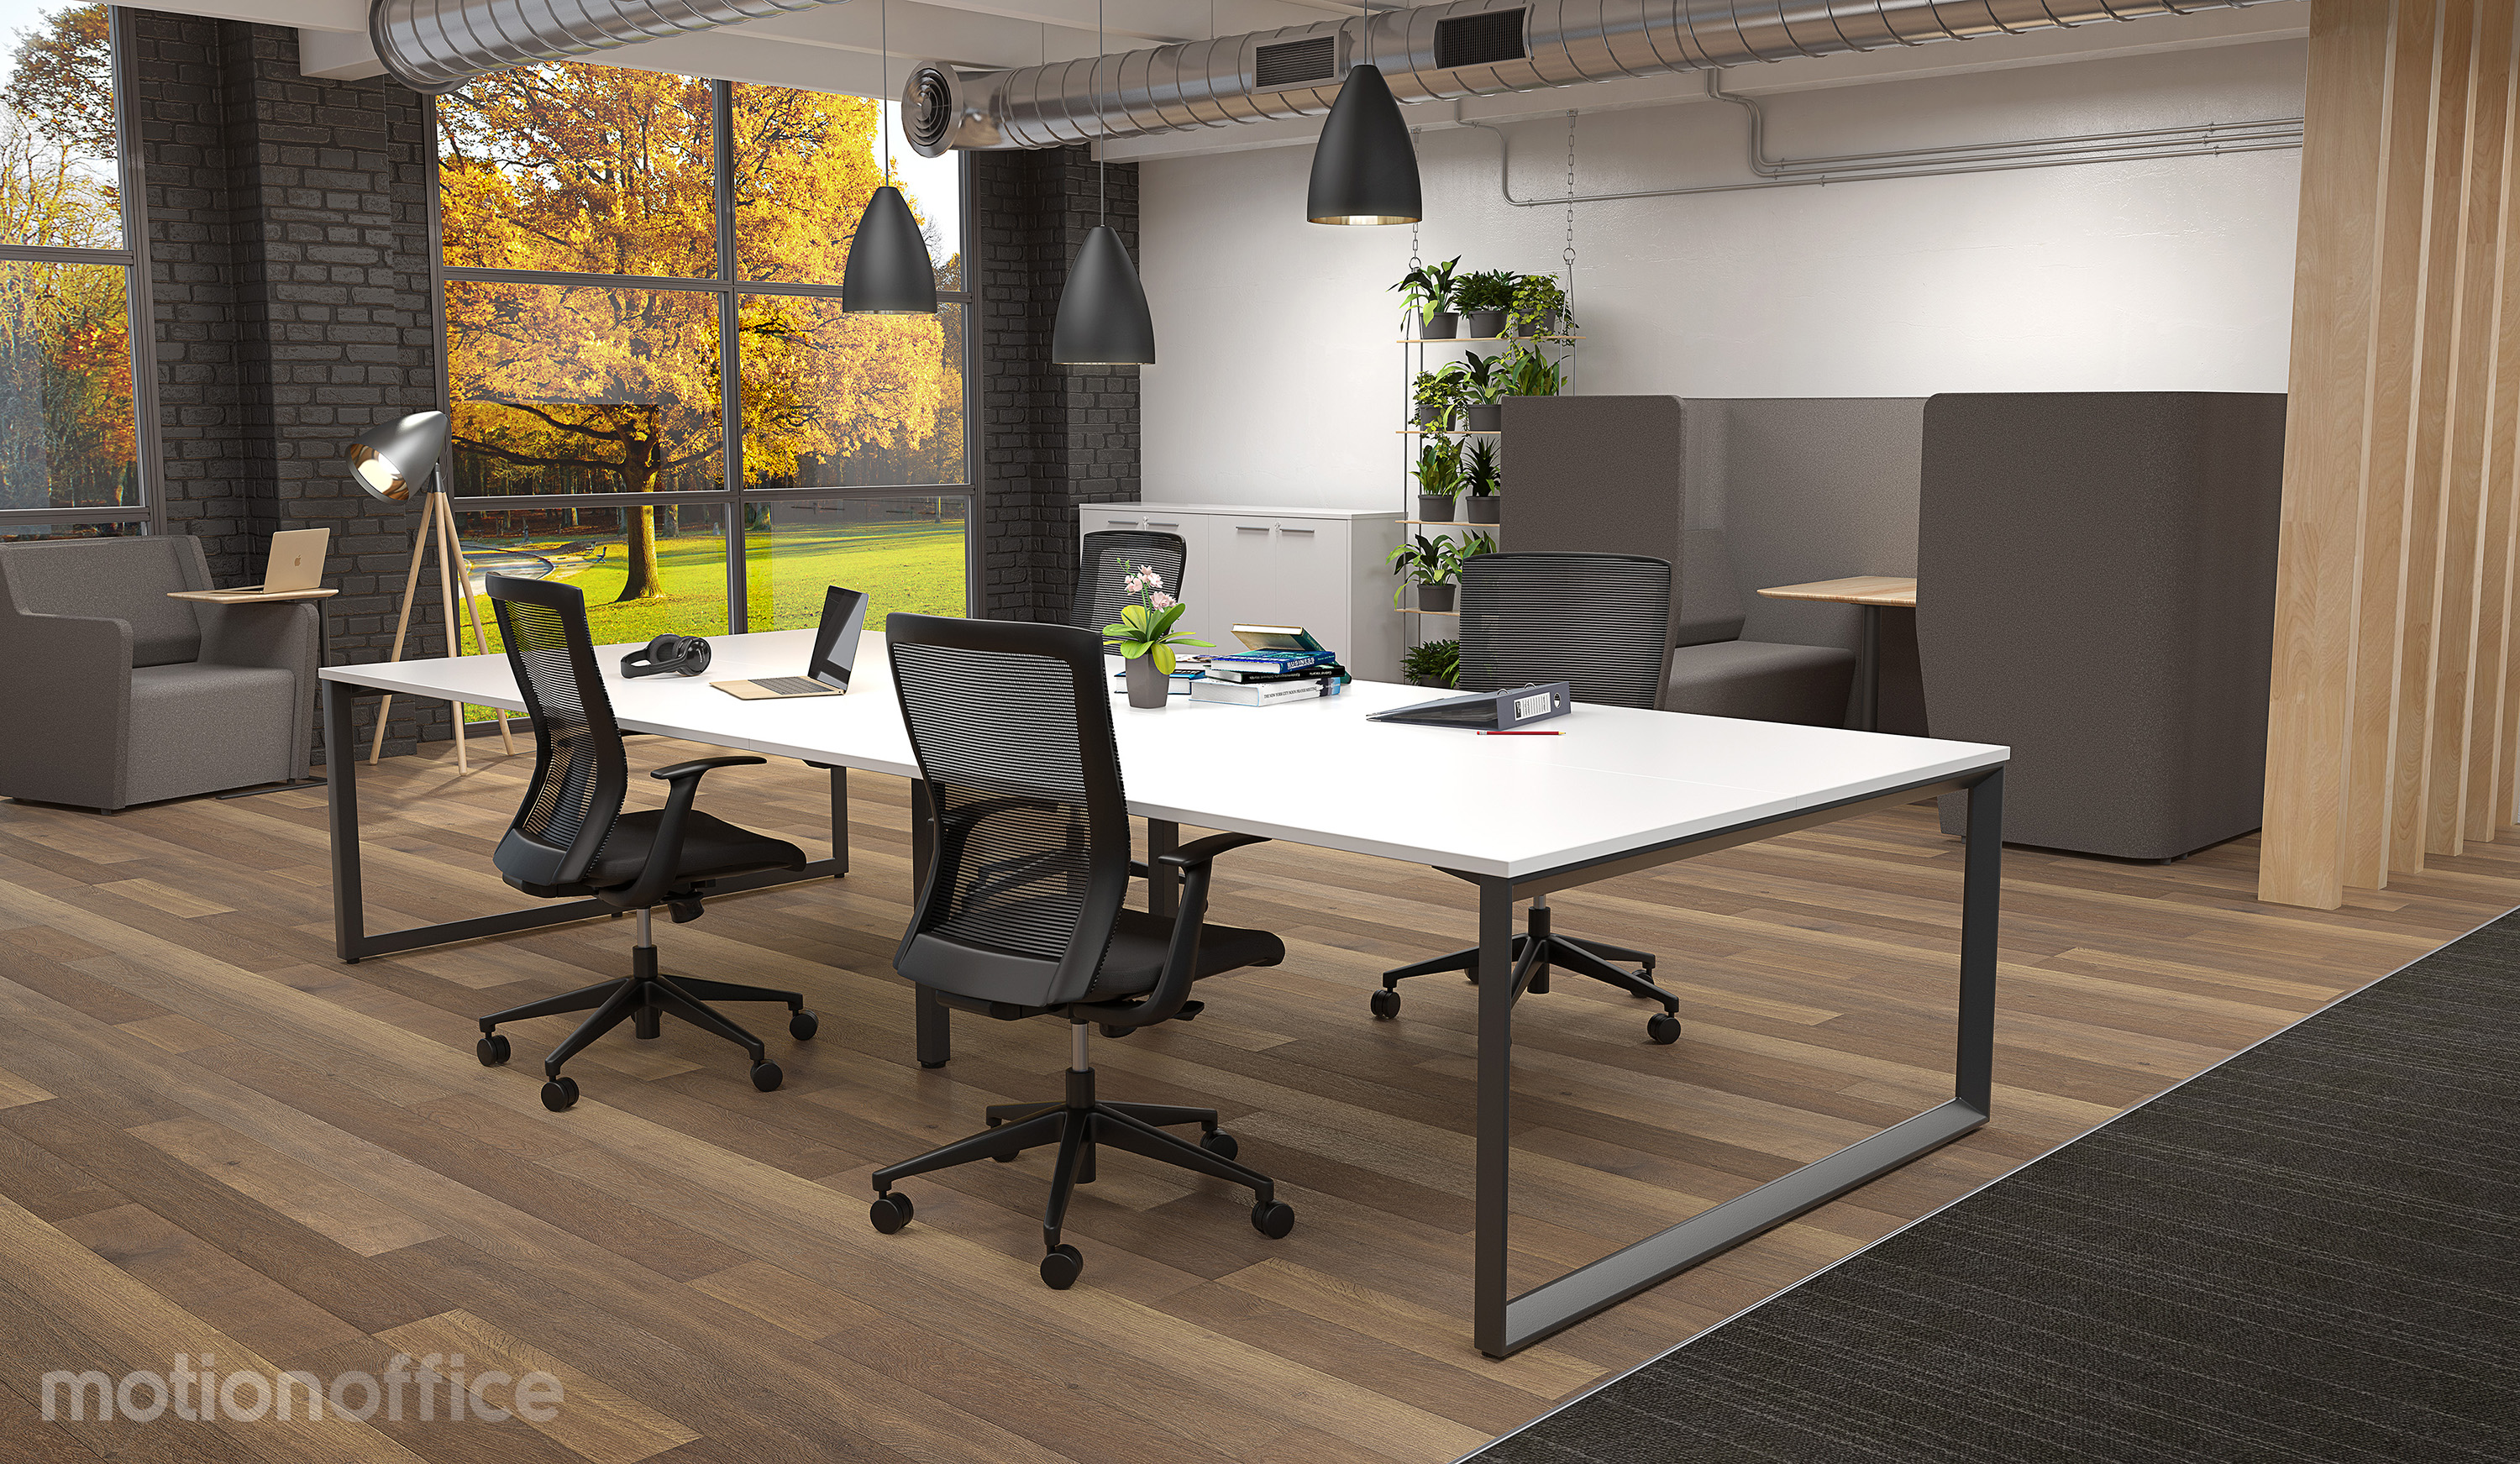 Modern Open Plan Office Workplace With Workstations, Office Chairs and Grey Pods